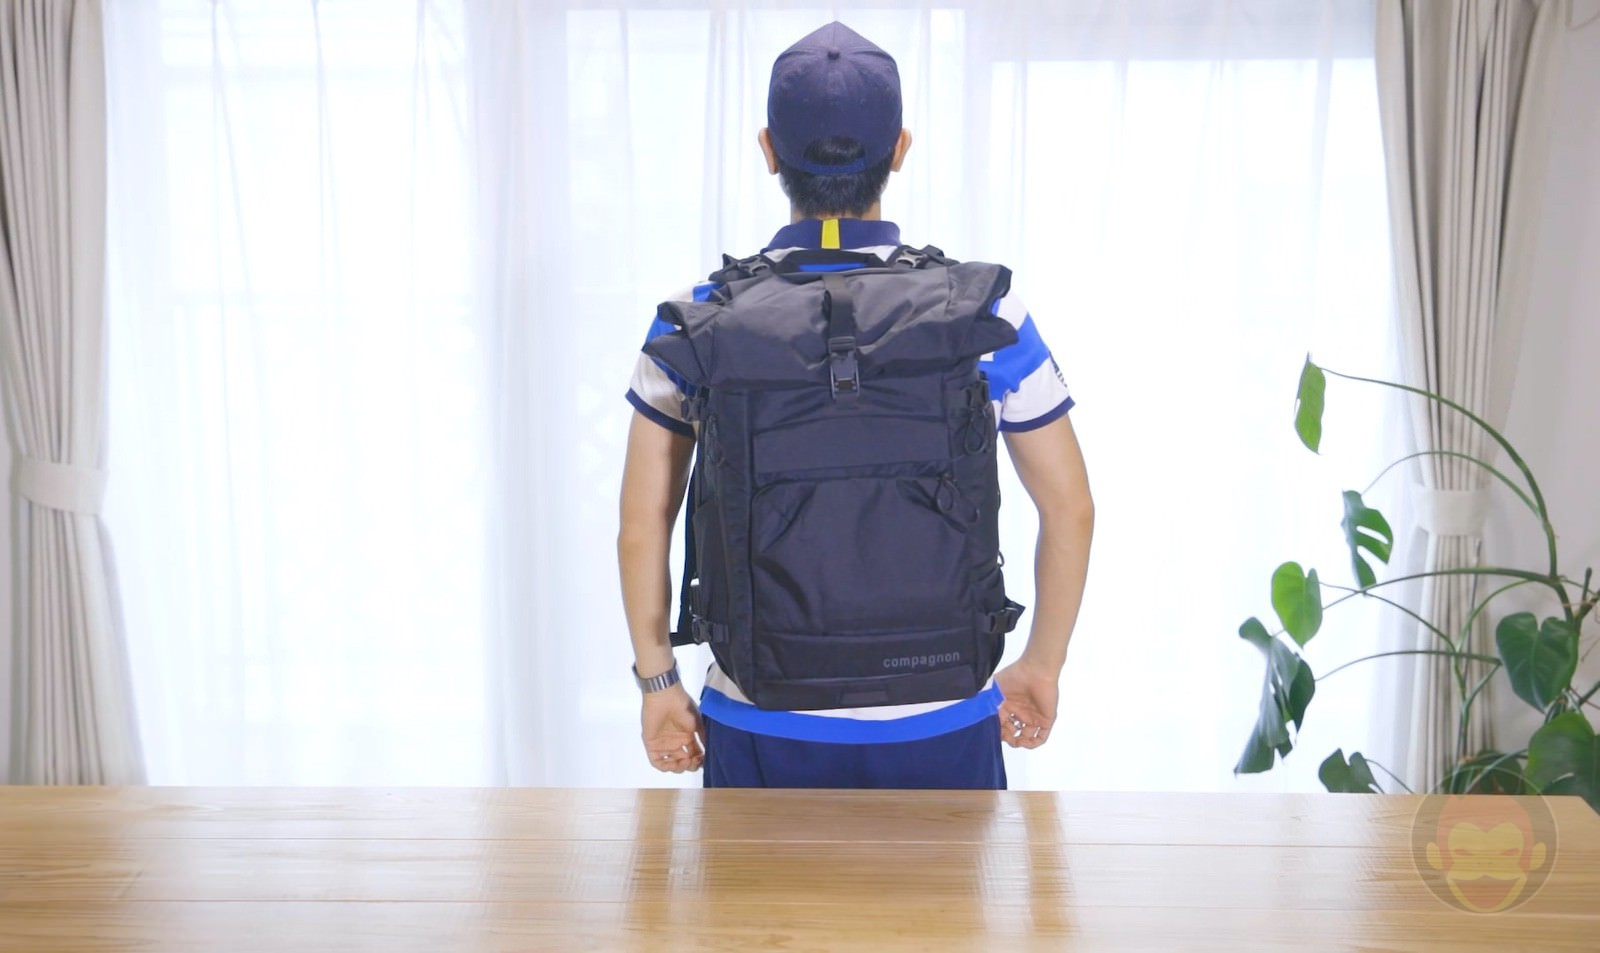 Wearing-the-Compagnon-Element-Backpack-09.jpg